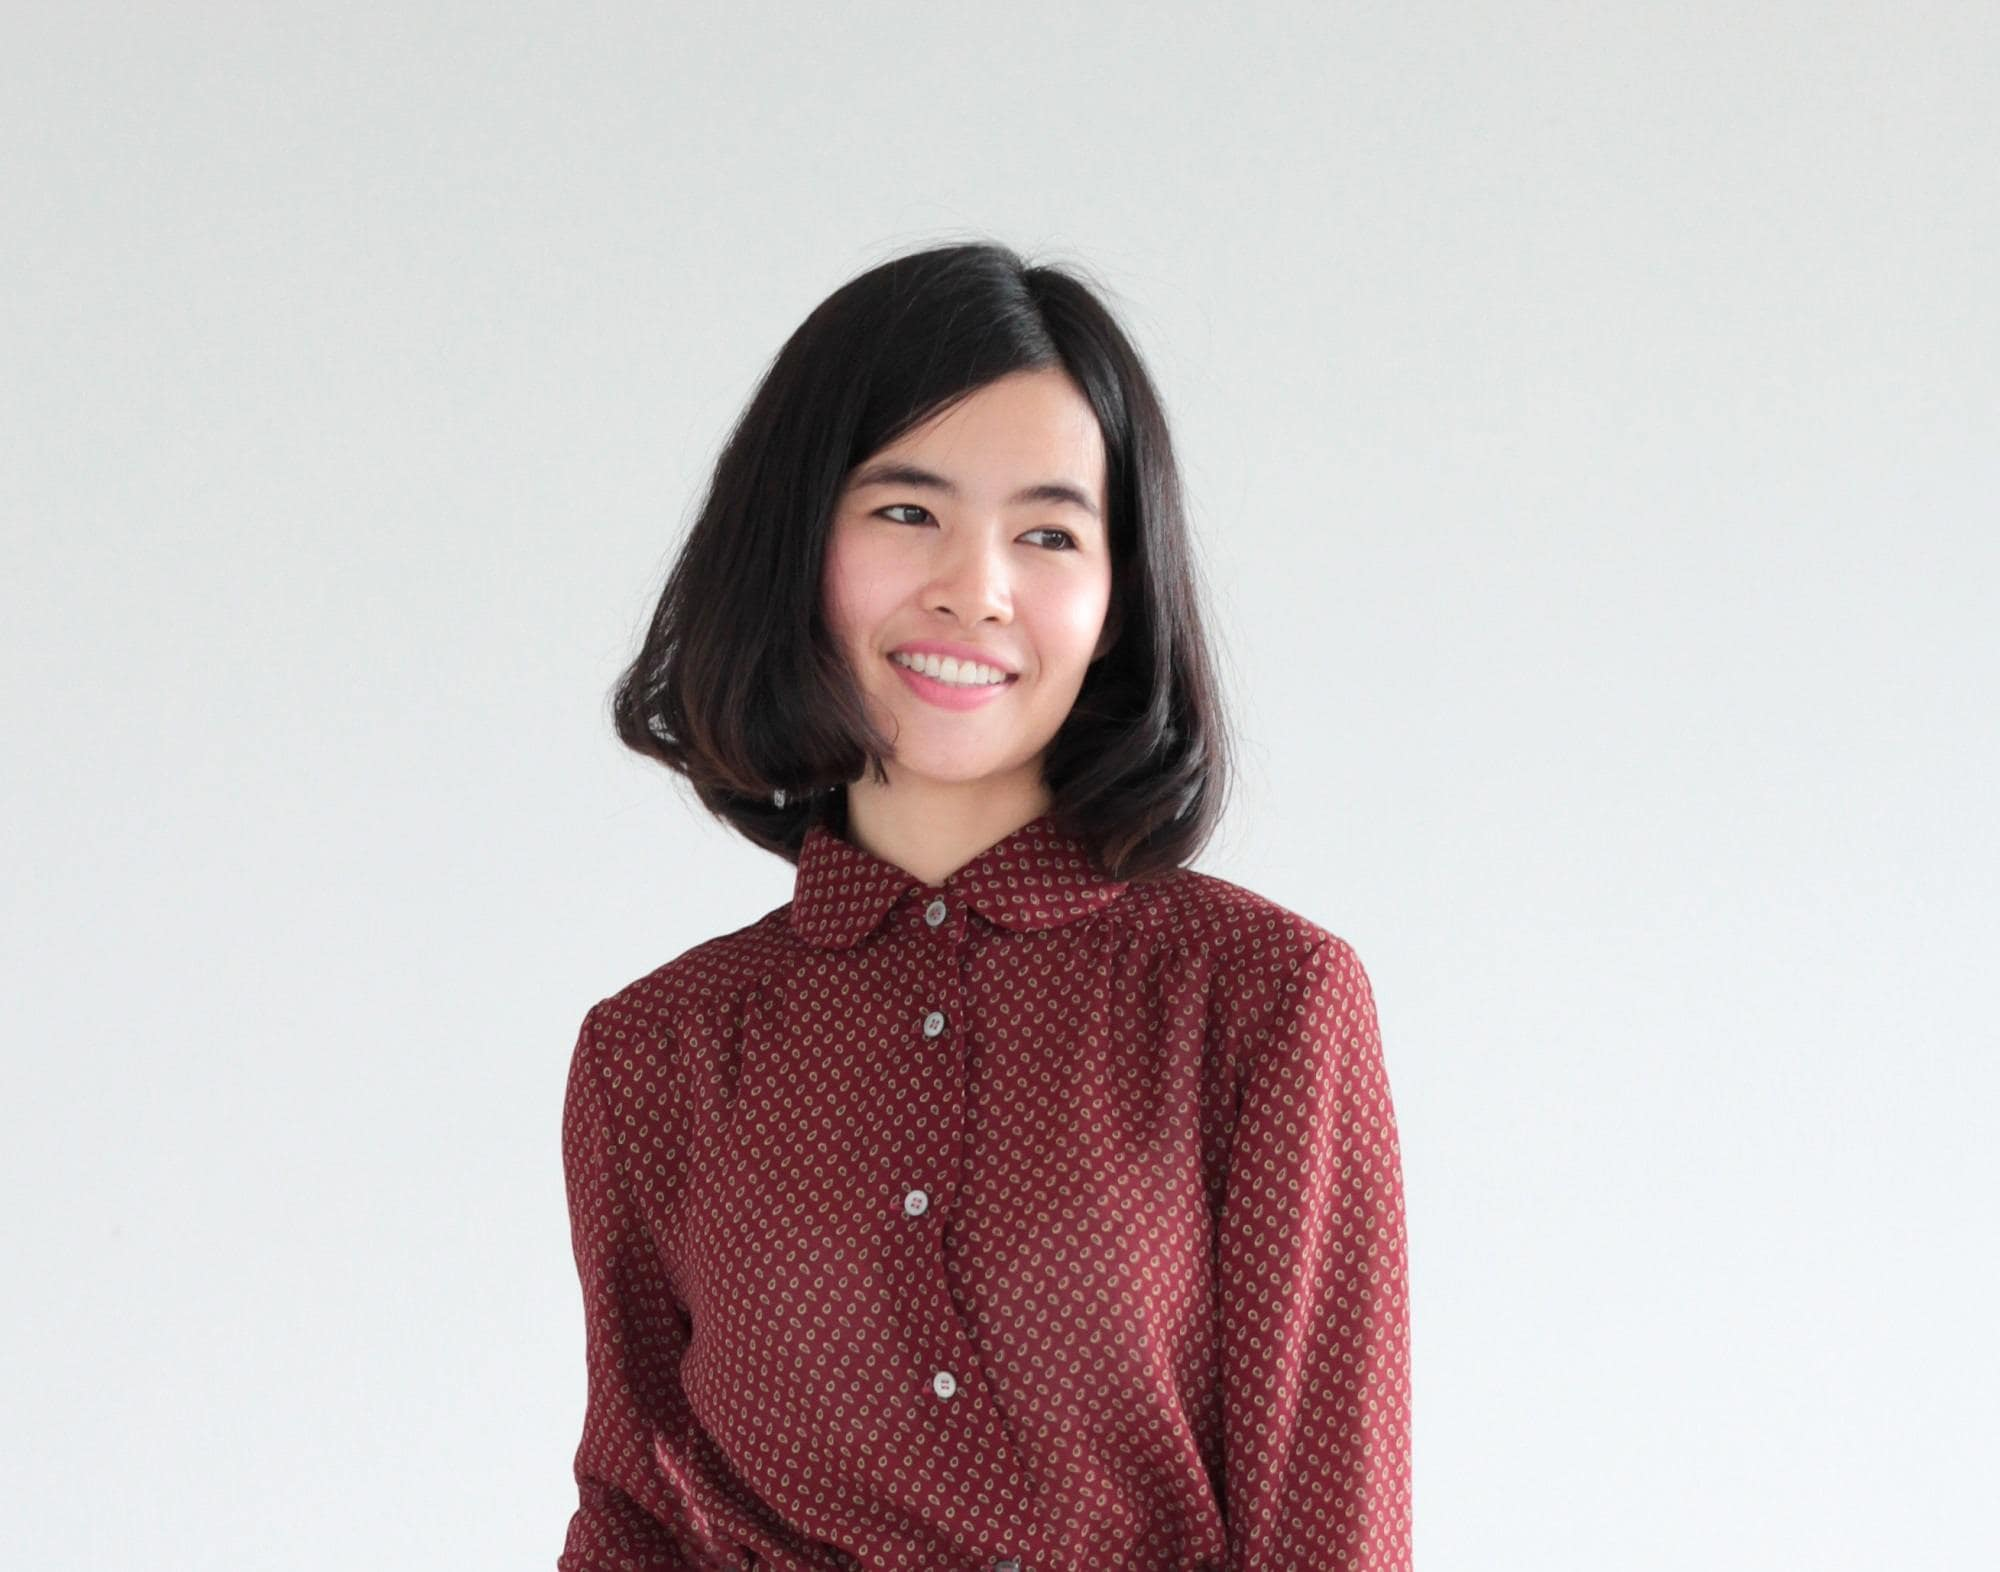 Chin length hairstyles: Asian woman wearing brown long sleeved polo with bob haircut against a white background